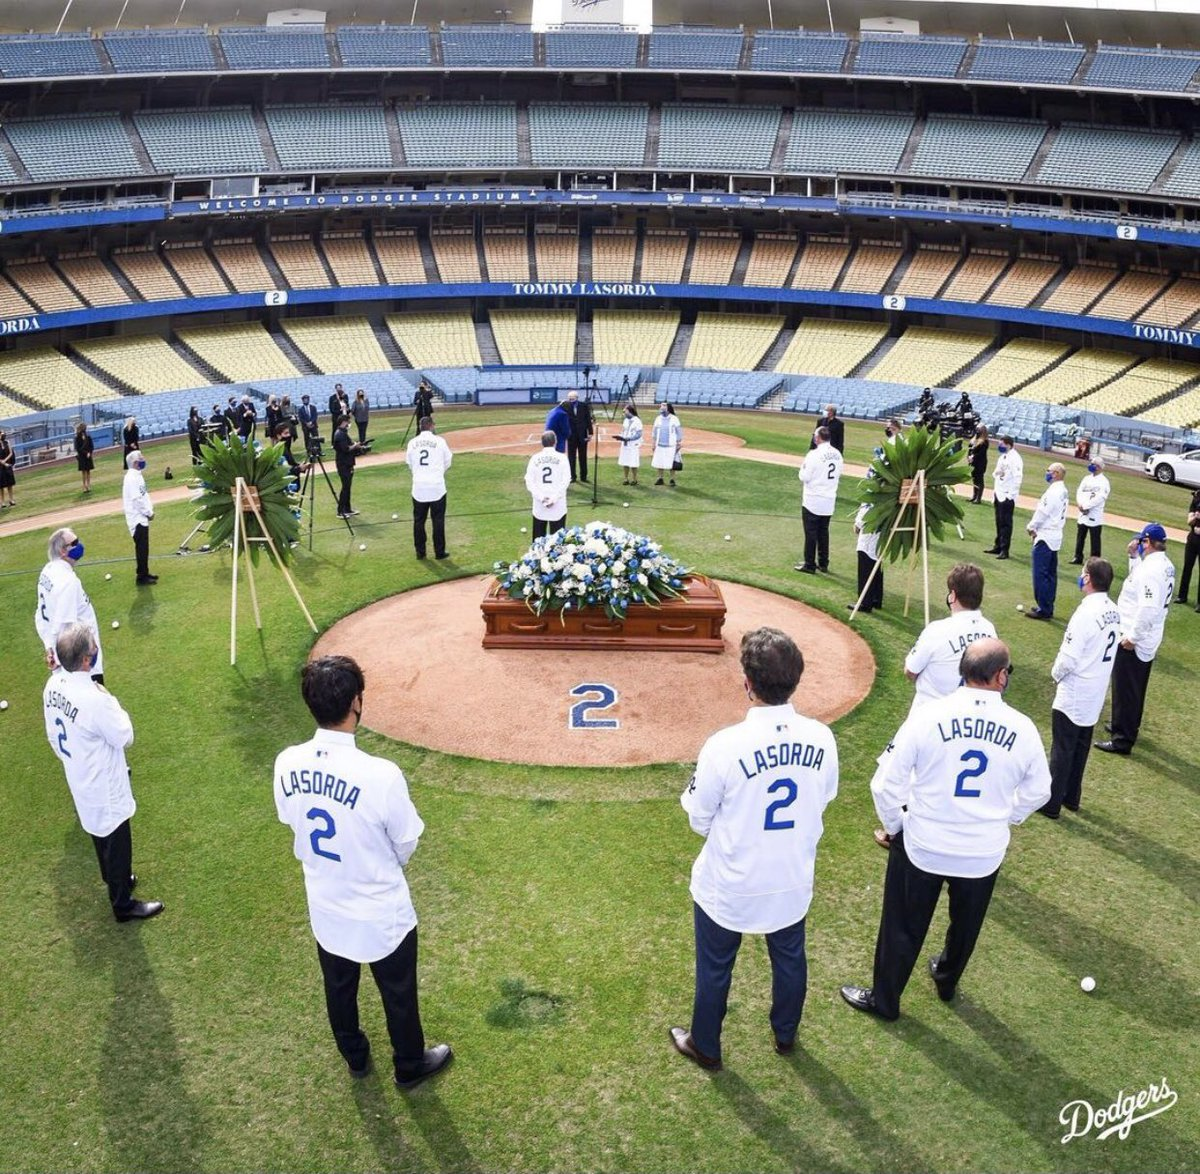 #riptommylasorda #Dodgers